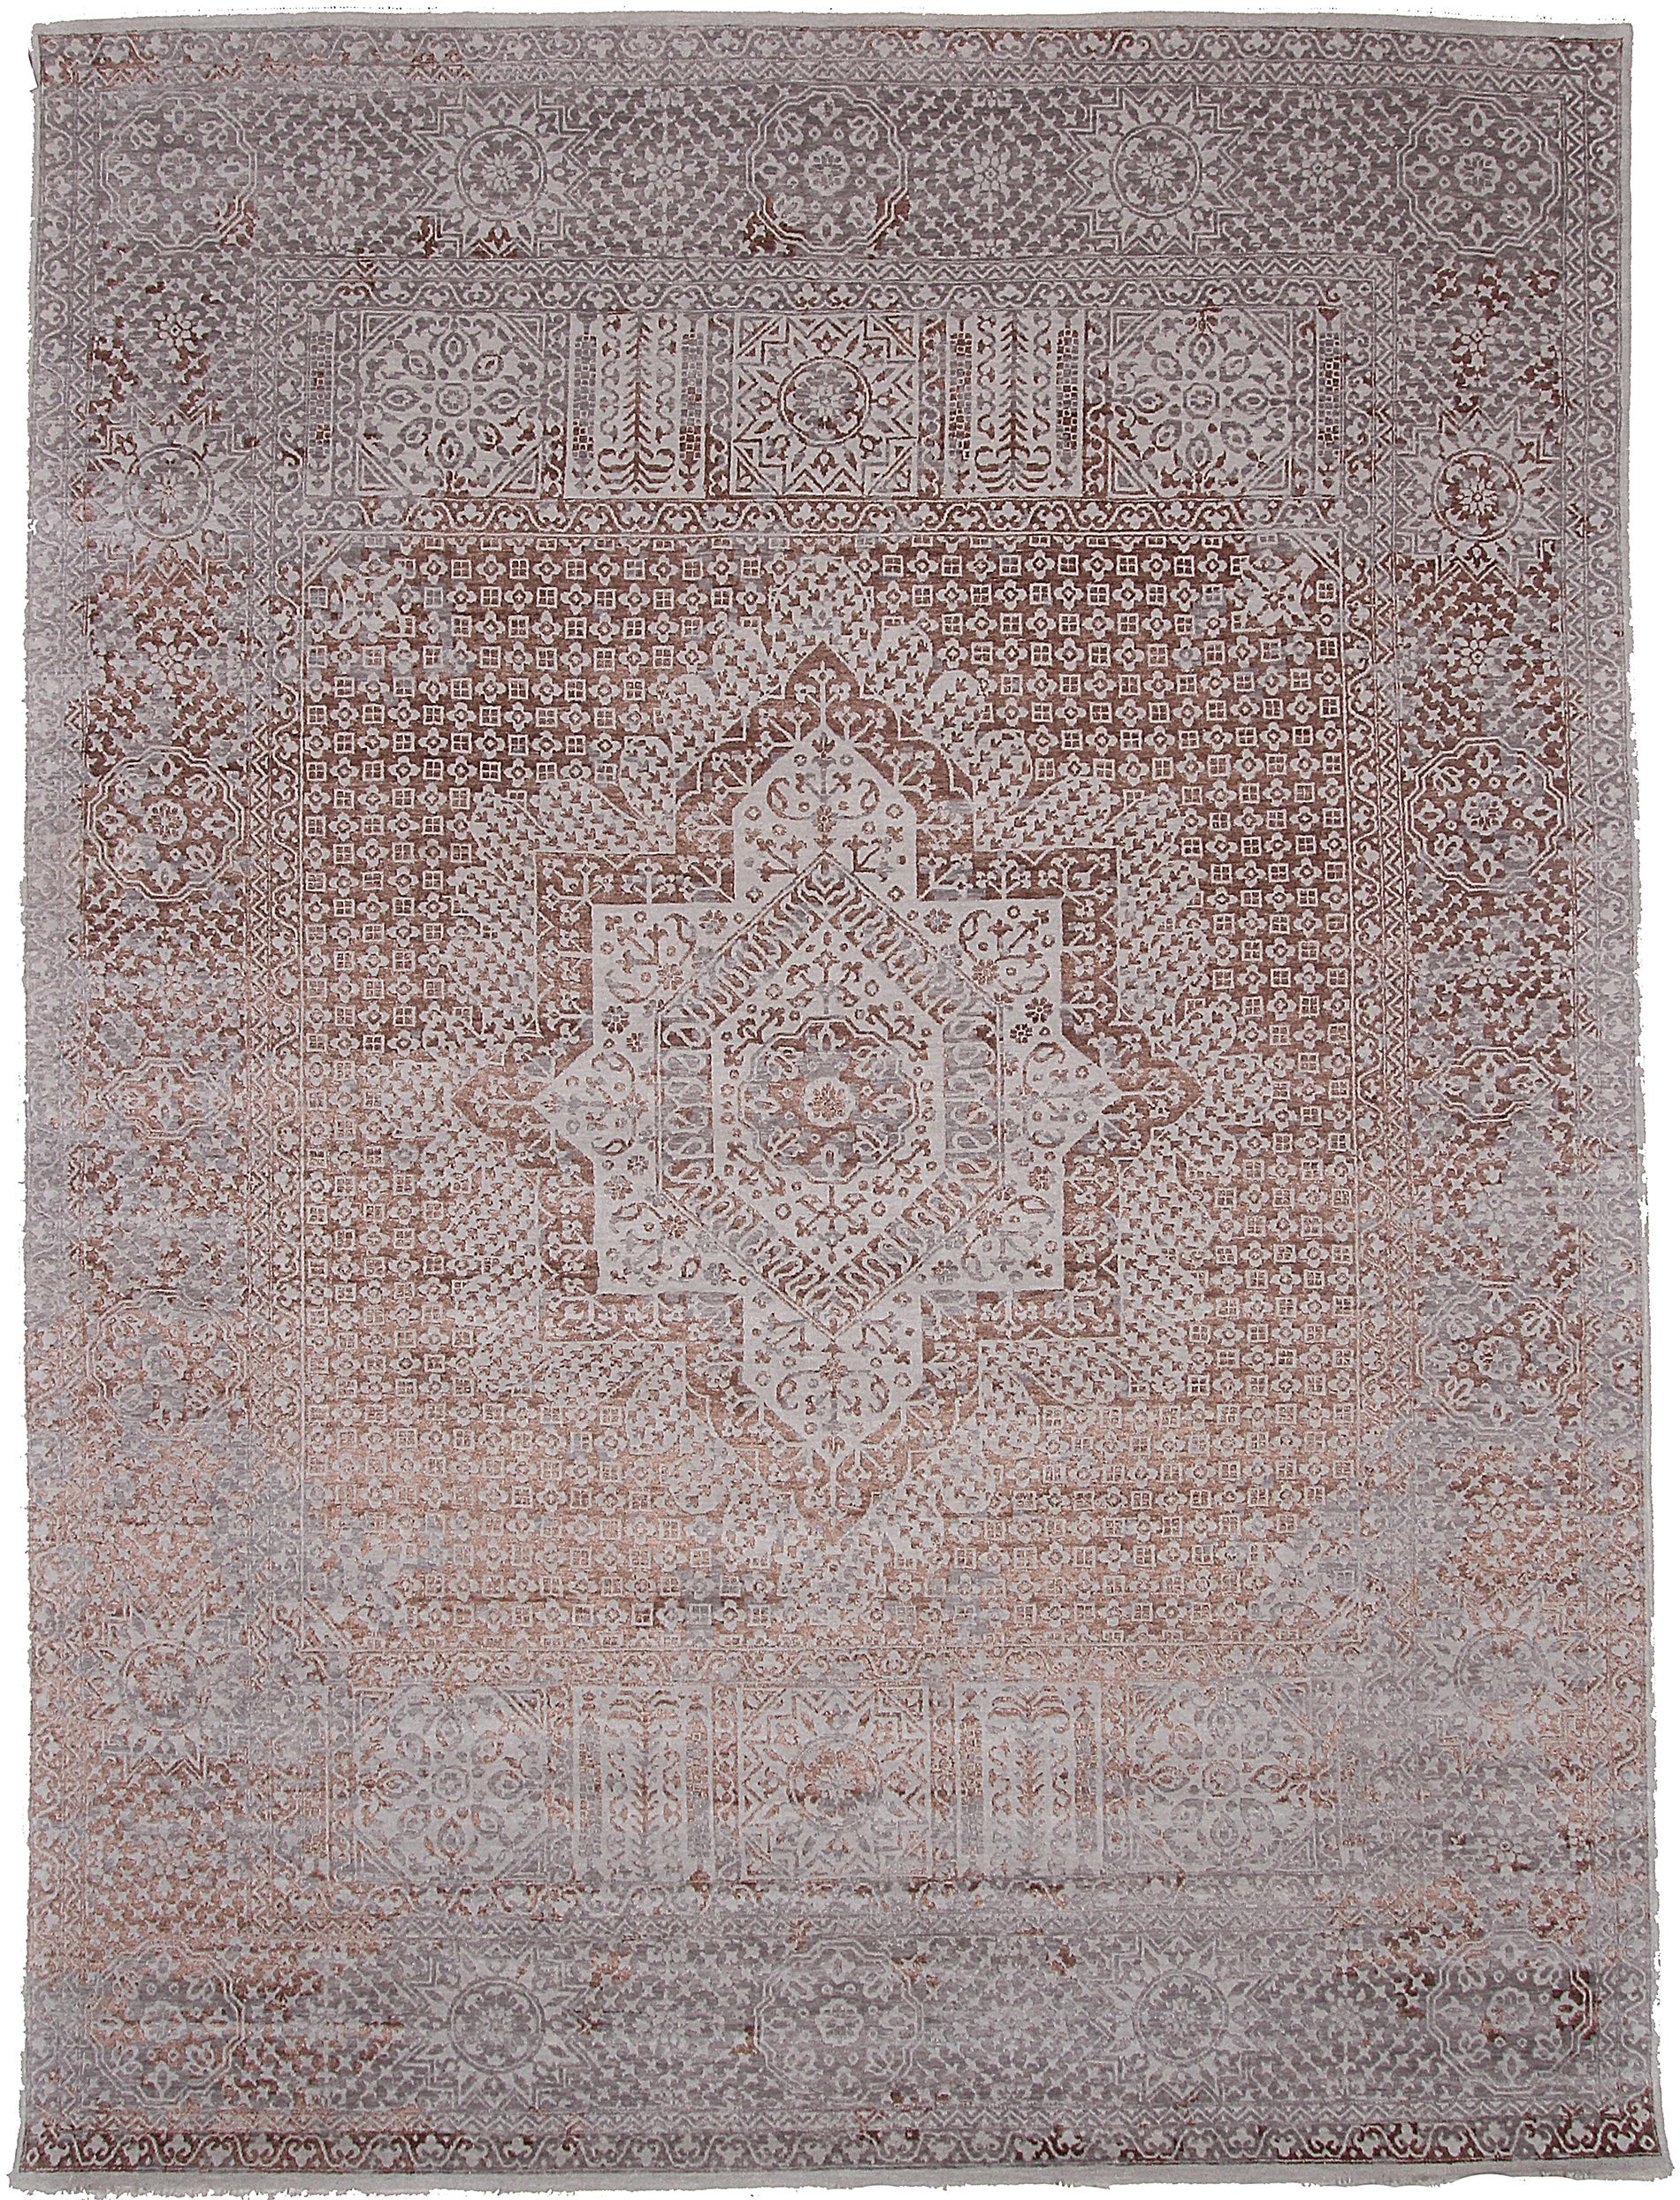 36520 Contemporary Indian Rugs Discount Carpet Staircase Ca